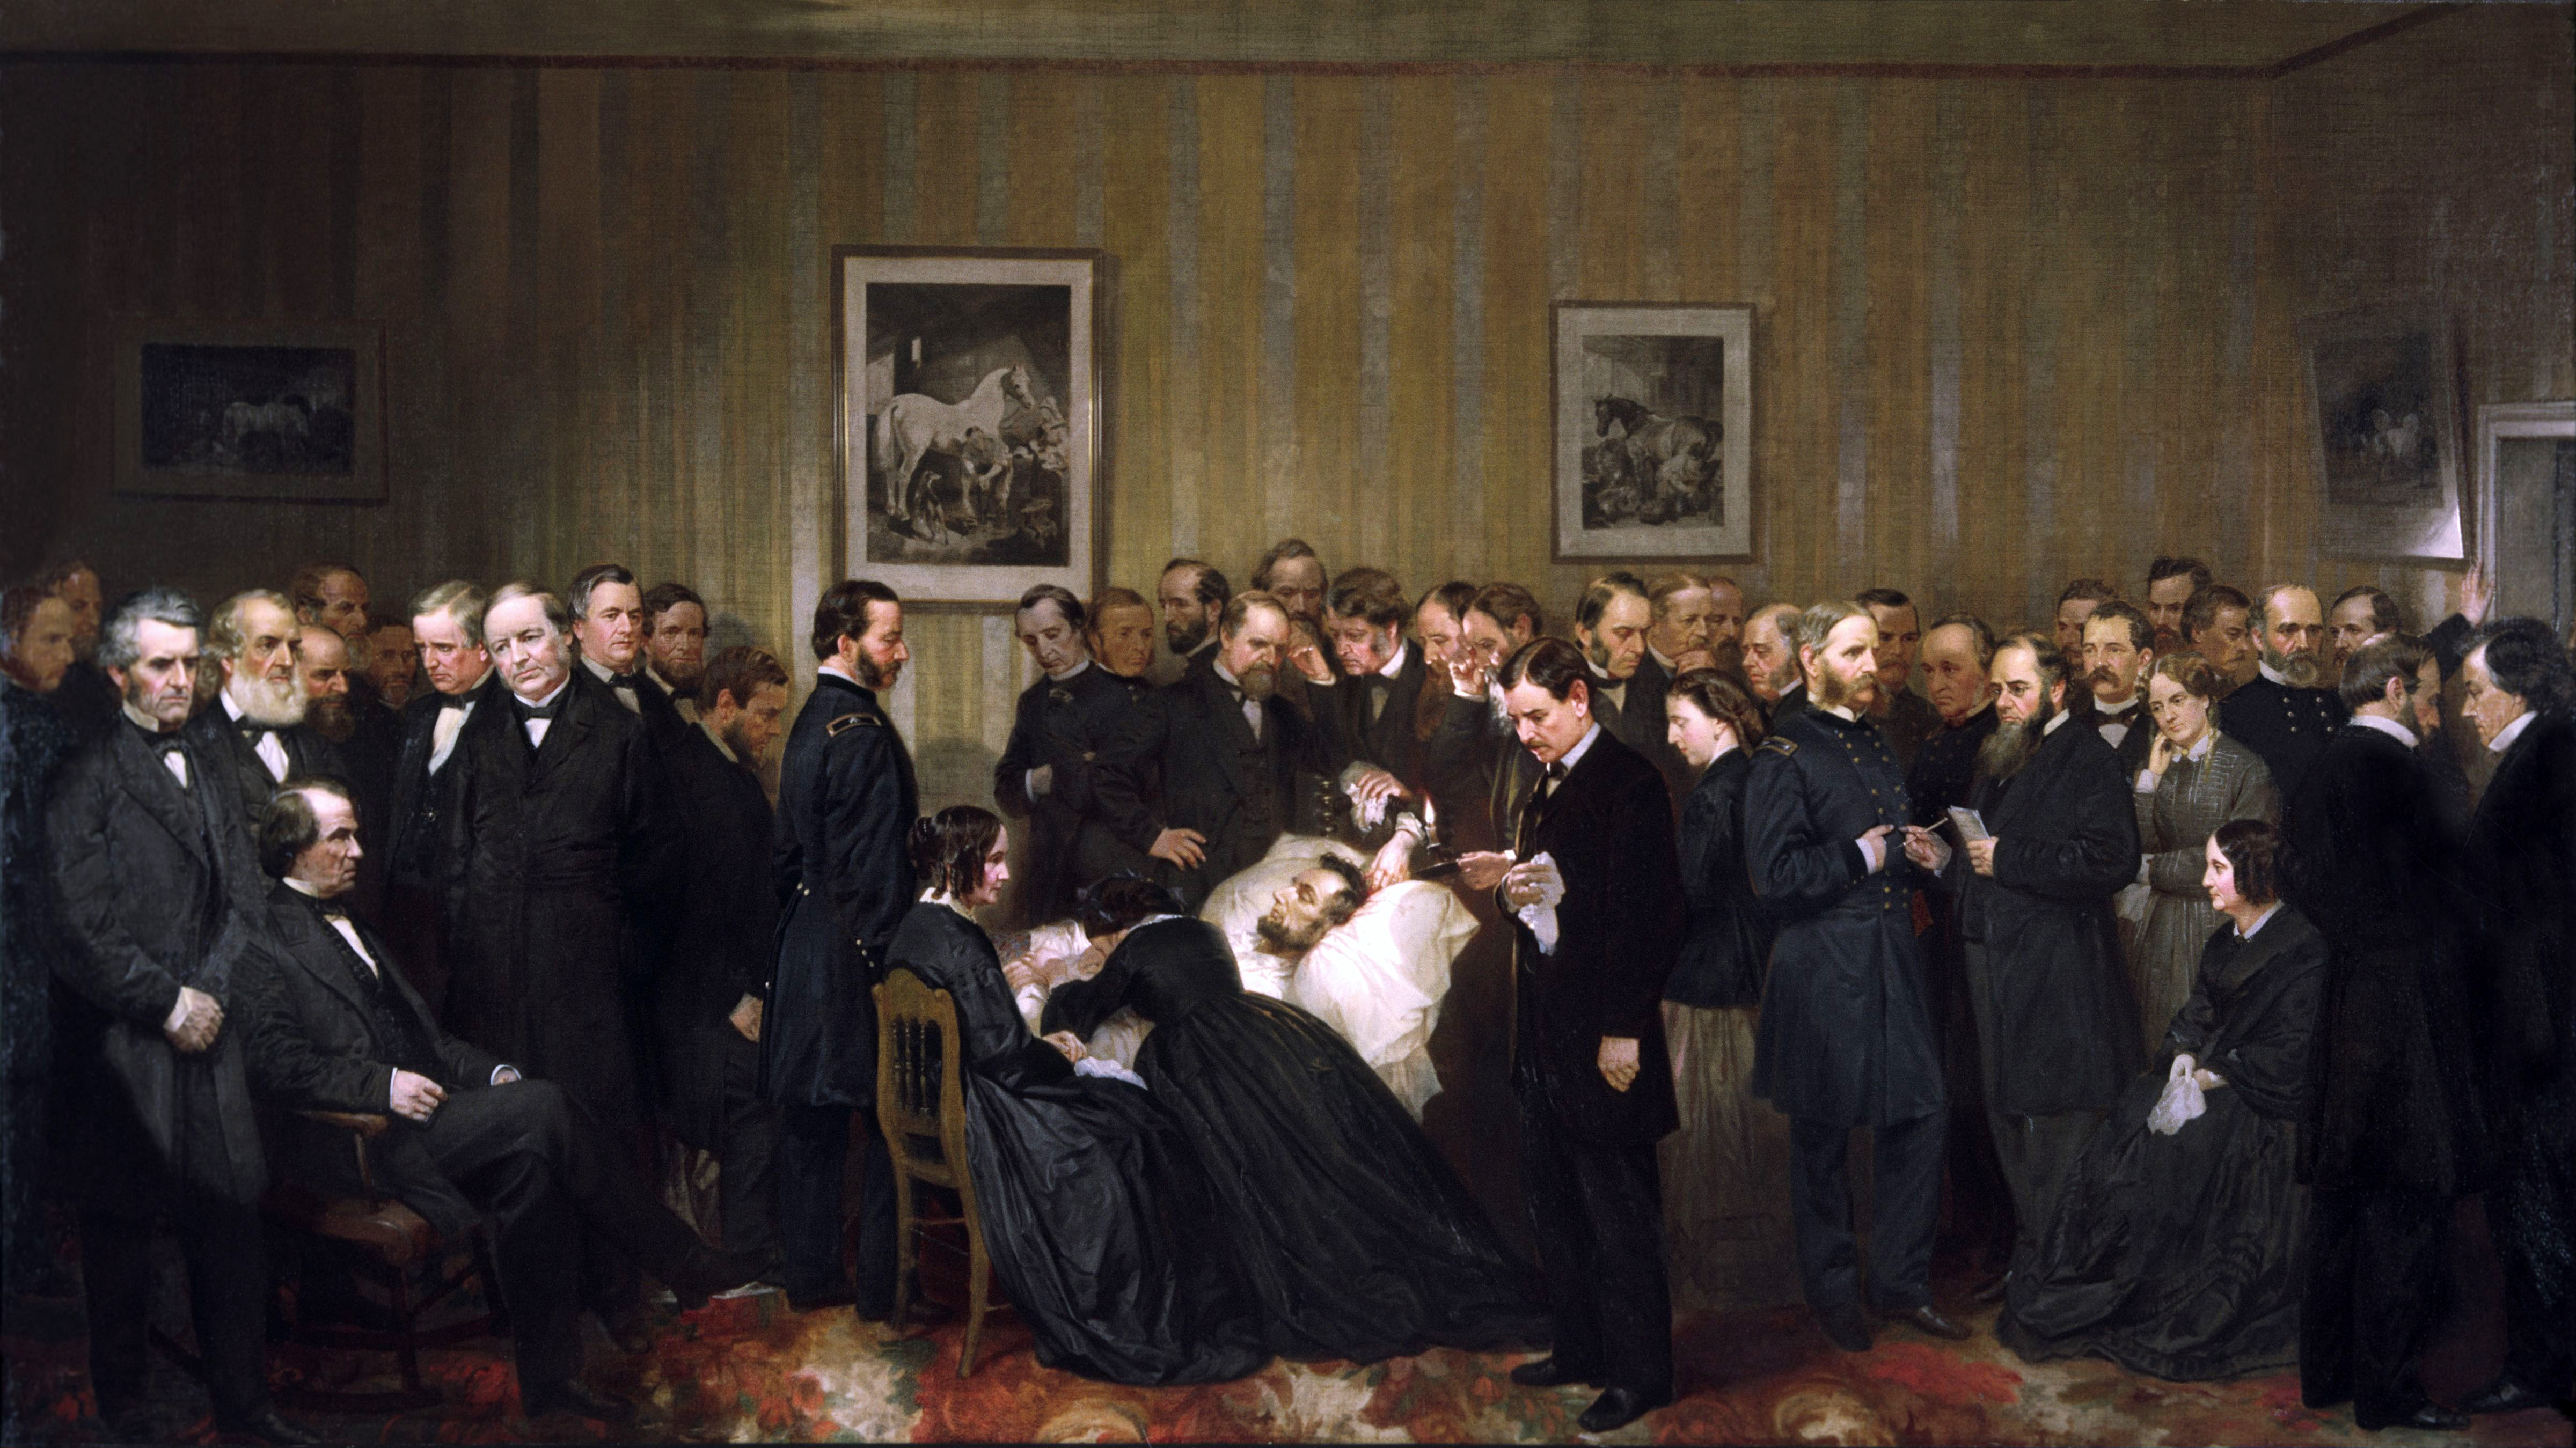 Designed by John B. Bachelder and painted by Alonzo Chappel, this work of art depicts those who visited the dying president throughout the night and early morning of April 14–15, 1865. These people did not visit Lincoln at the same time: they could not have all fit in the small first-floor room of the Petersen House. Lincoln's wife, Mary, is pictured in the center, lying across the president's body. His son Robert stands in the foreground to the right of the bed. Vice President Andrew Johnson is seated at the far left. Oil on canvas, 52 × 98 in (132 × 248.9 cm), 1868. Collection on Chicago History Museum.